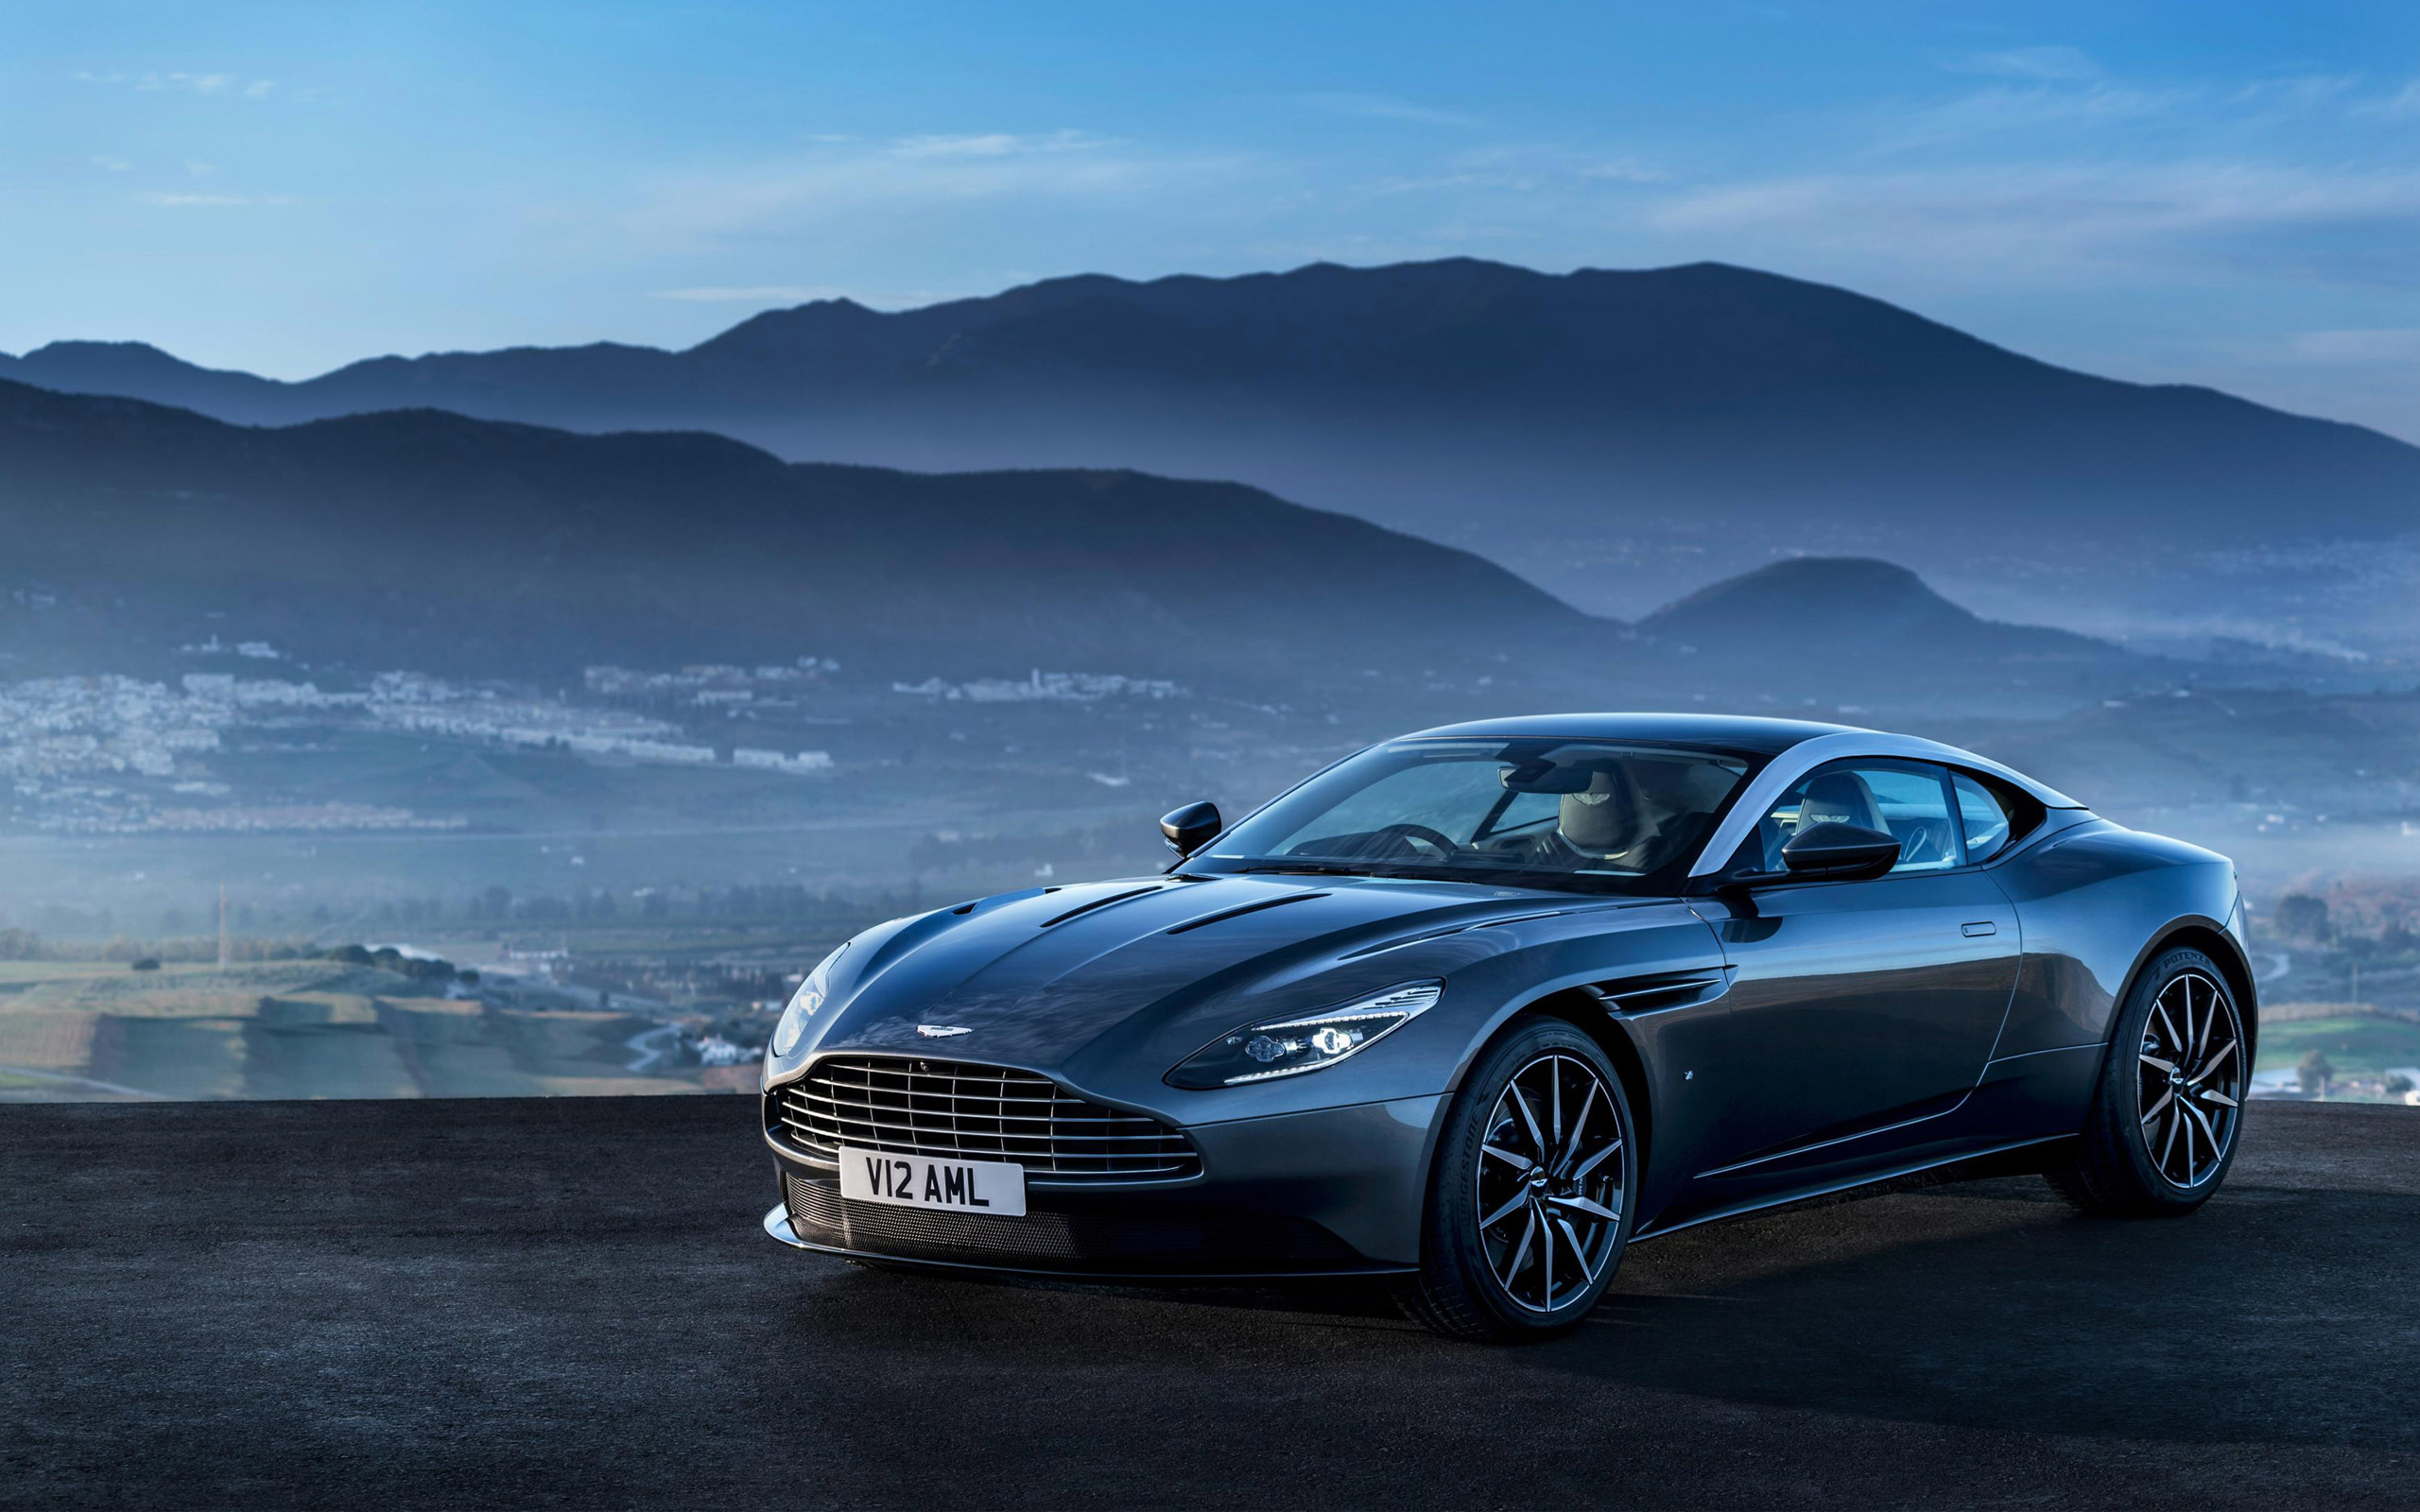 Aston Martin DB11 Wallpapers and Background Images   stmednet 2560x1600